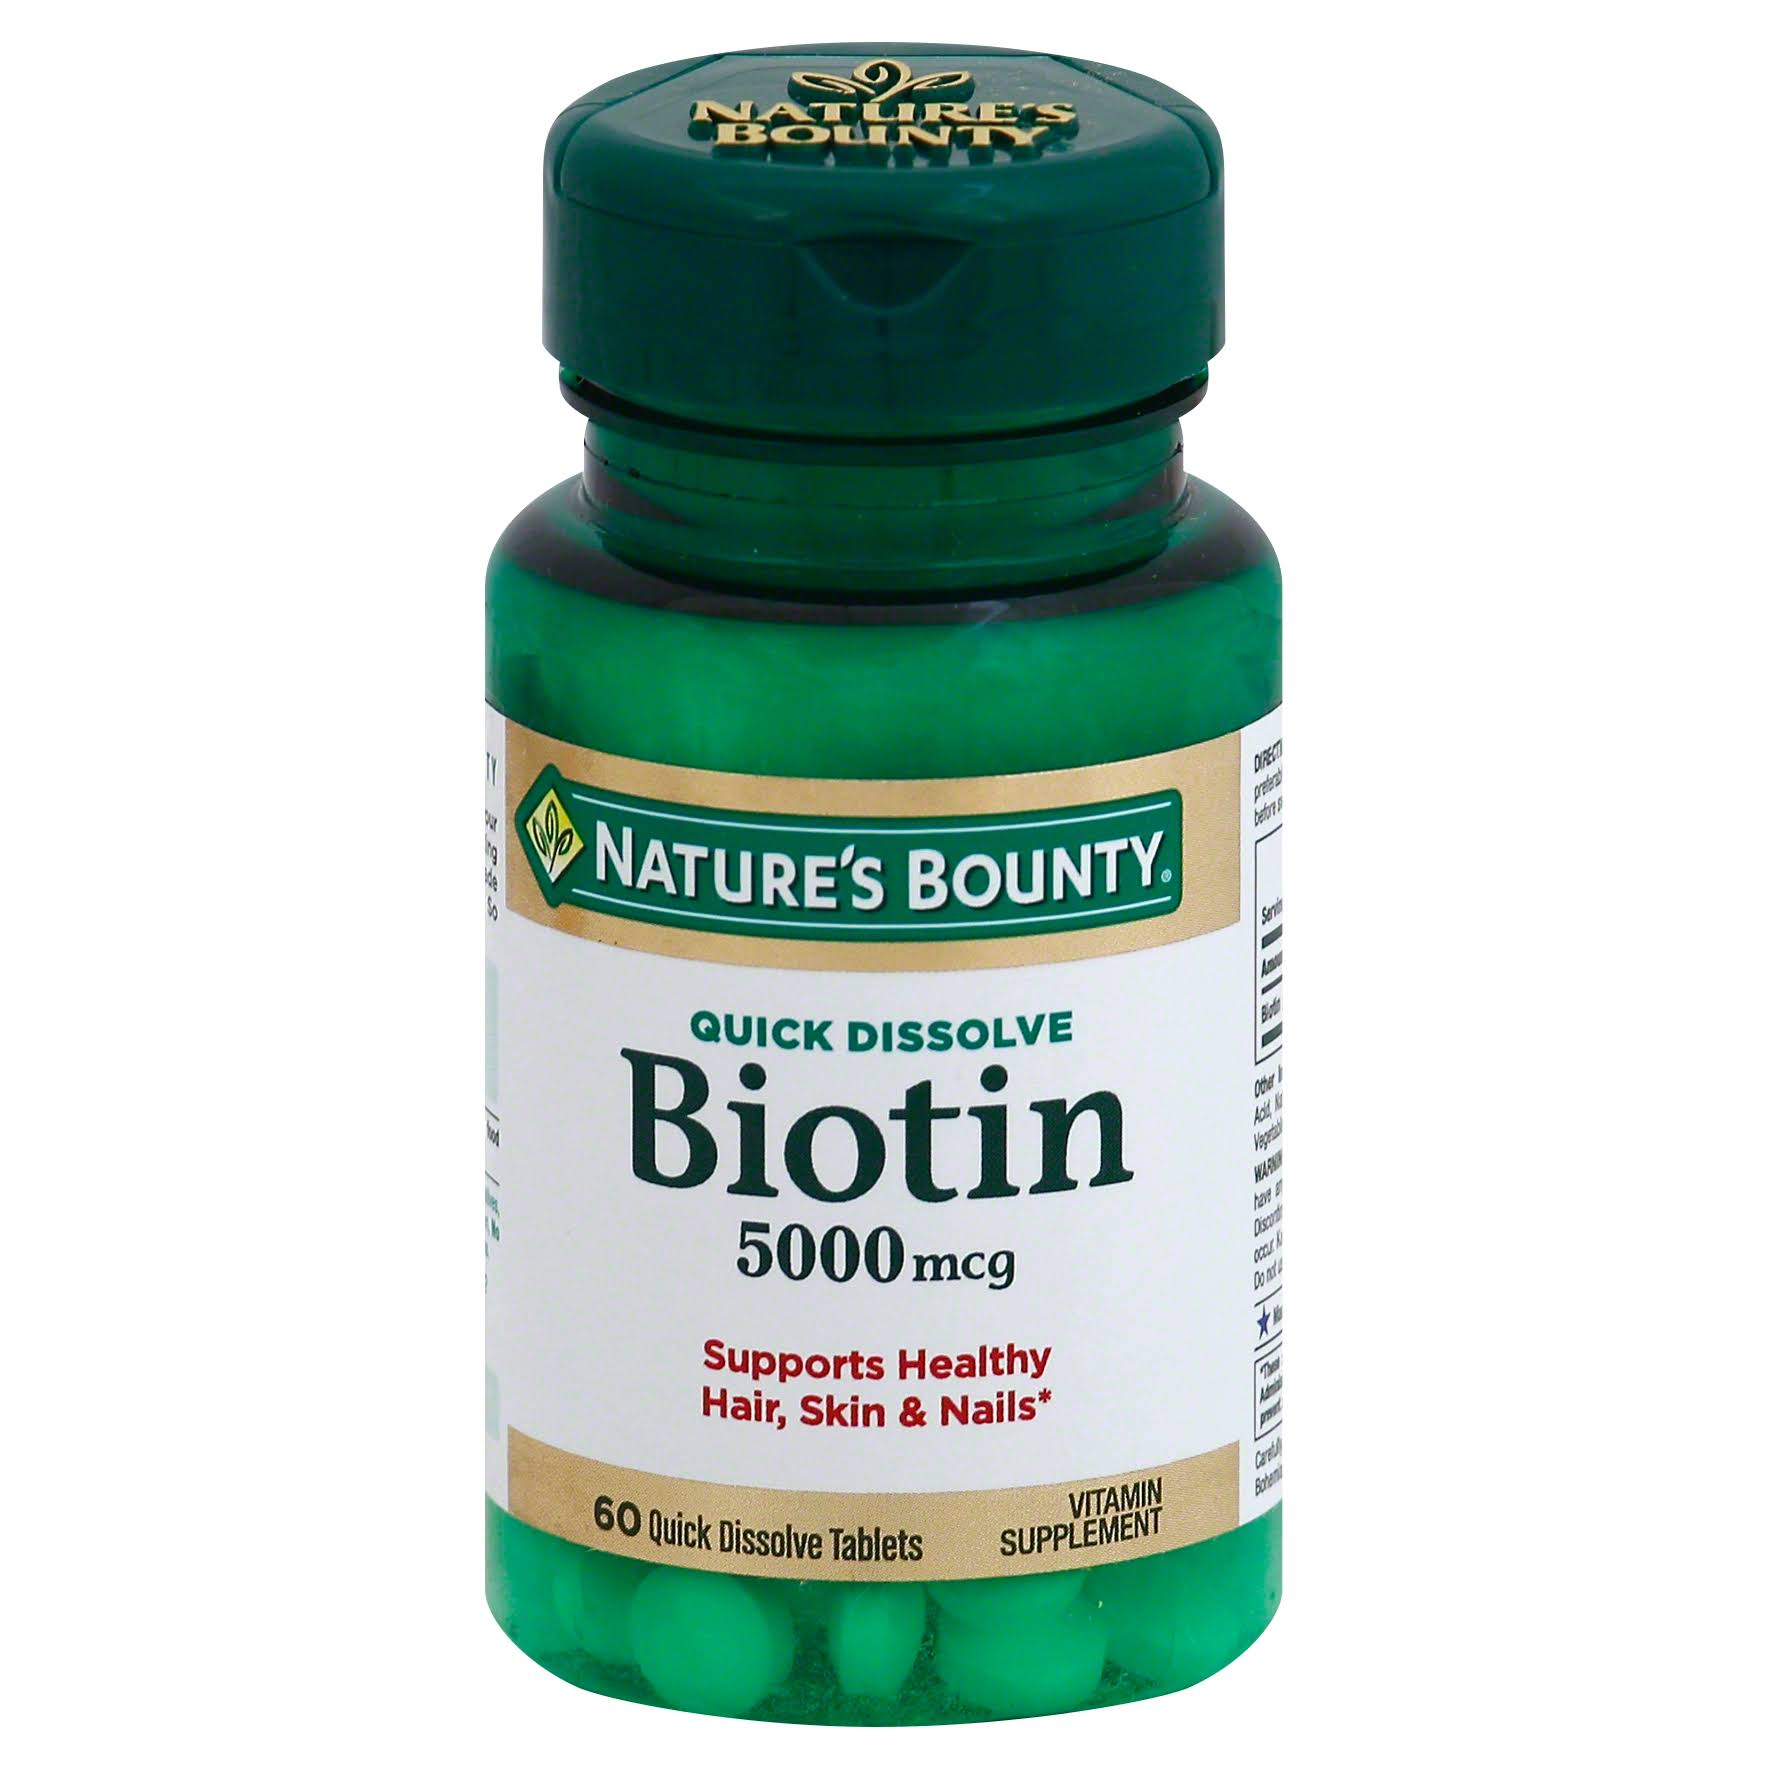 Natures Bounty Biotin Vitamin Supplement - 60 Tablets, 5000mcg